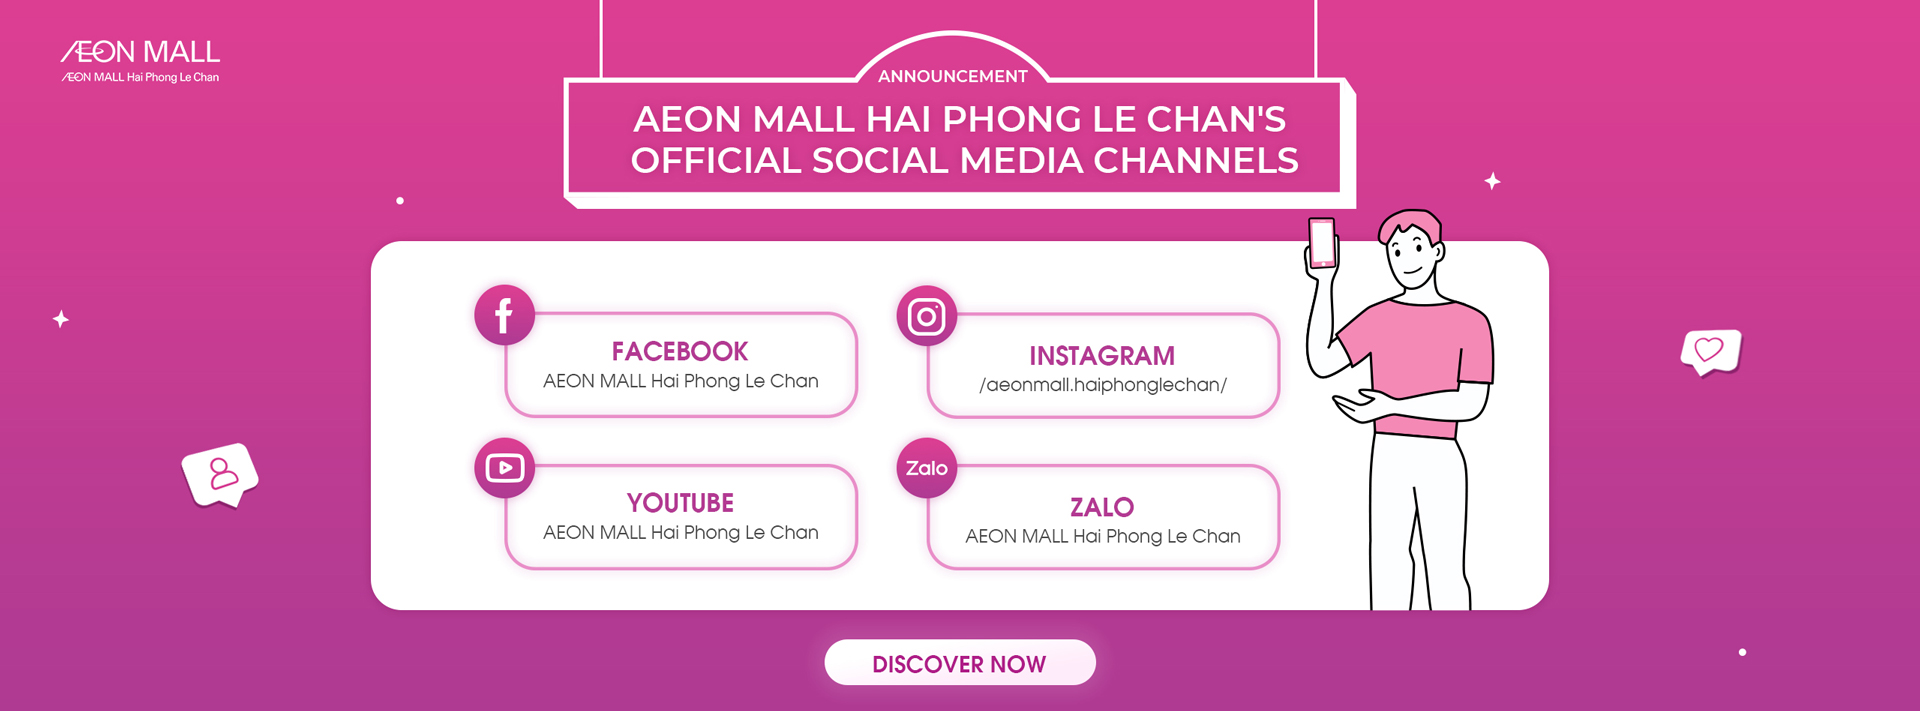 Announcement on the official social network channels of AEON MALL Hai Phong Le Chan